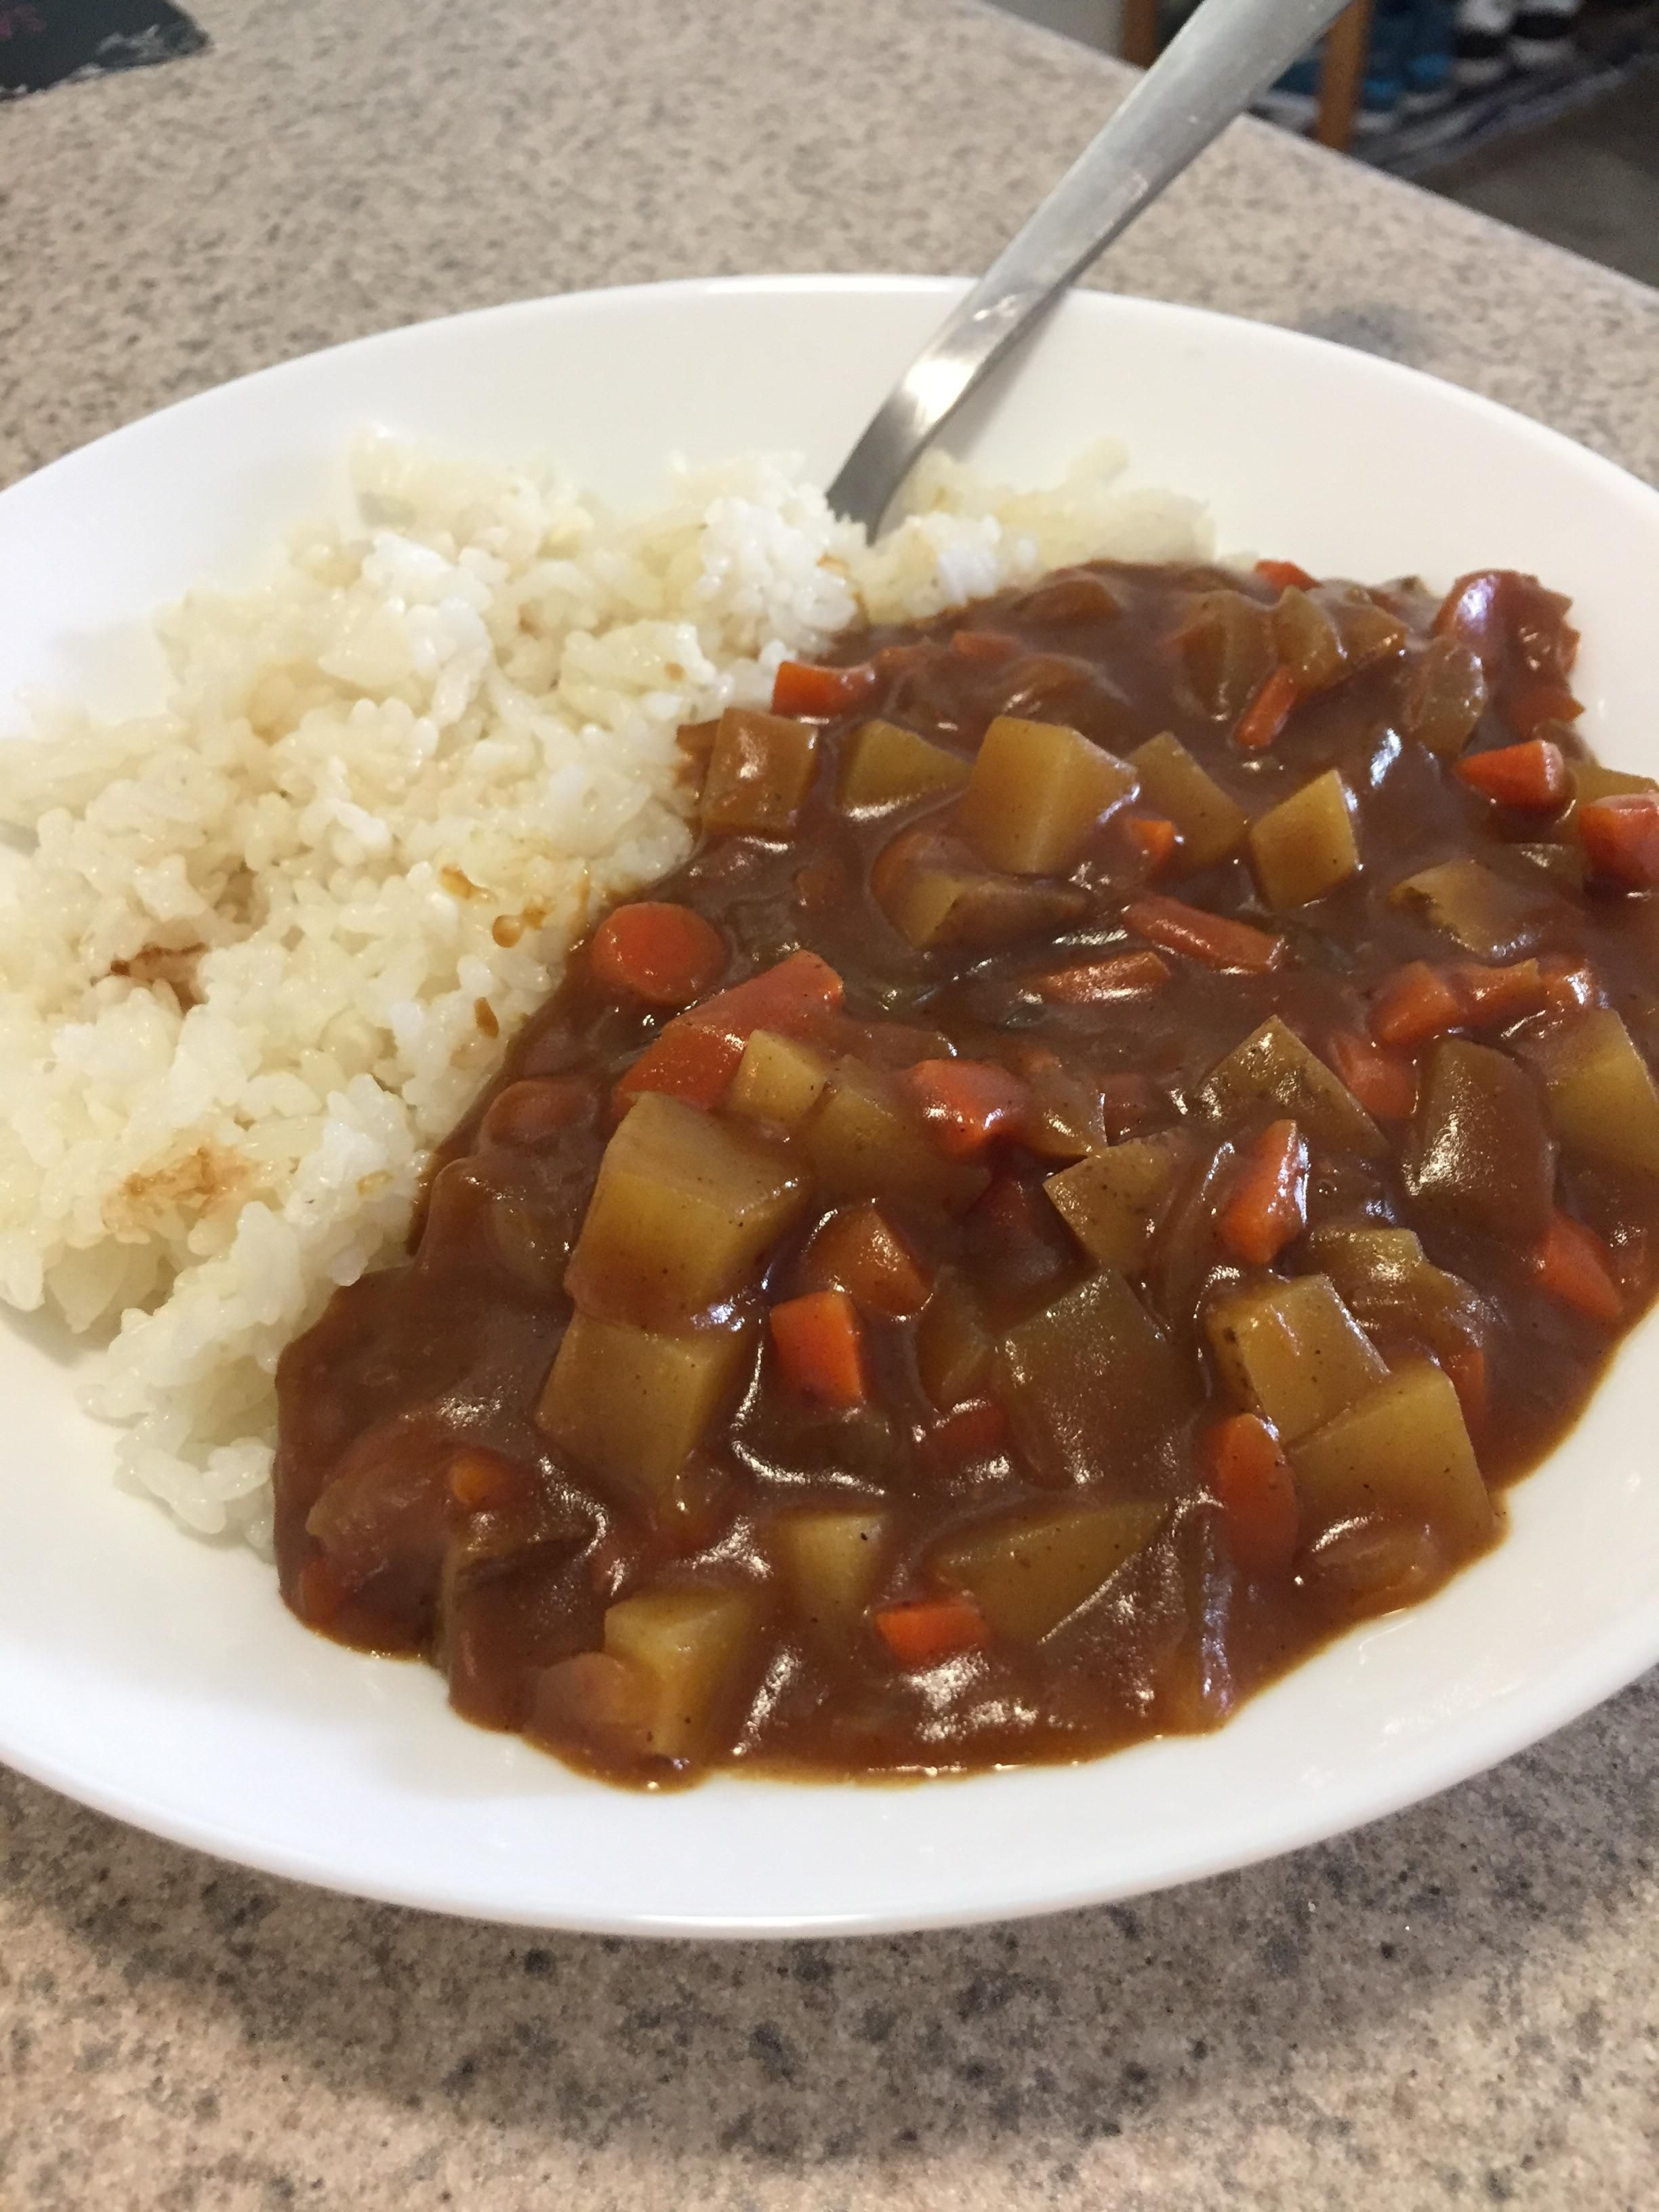 Homemade Extra Spicy Japanese Curry Recipes Food Cooking Delicious Foodie Foodrecipes Cook Recipe Health Japenese Food Food Recipes